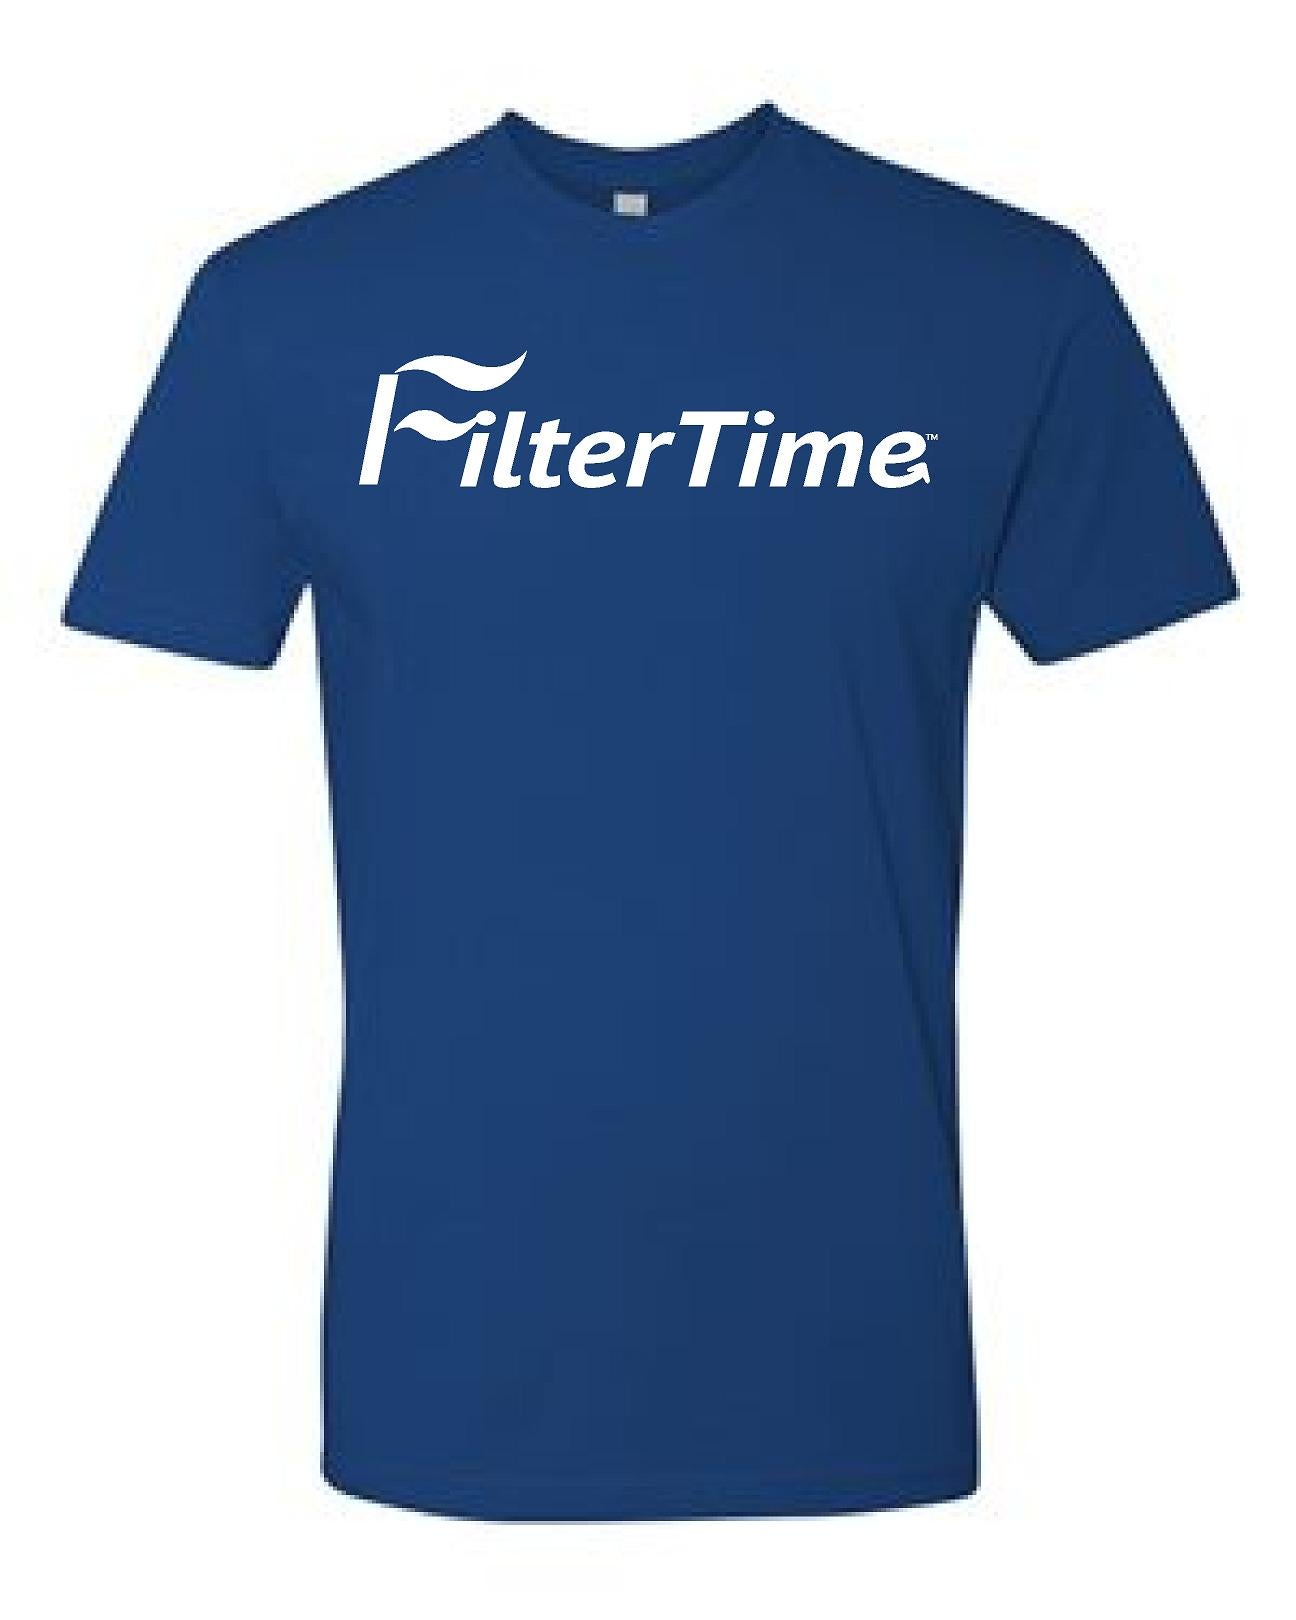 FilterTime Adult T-shirt